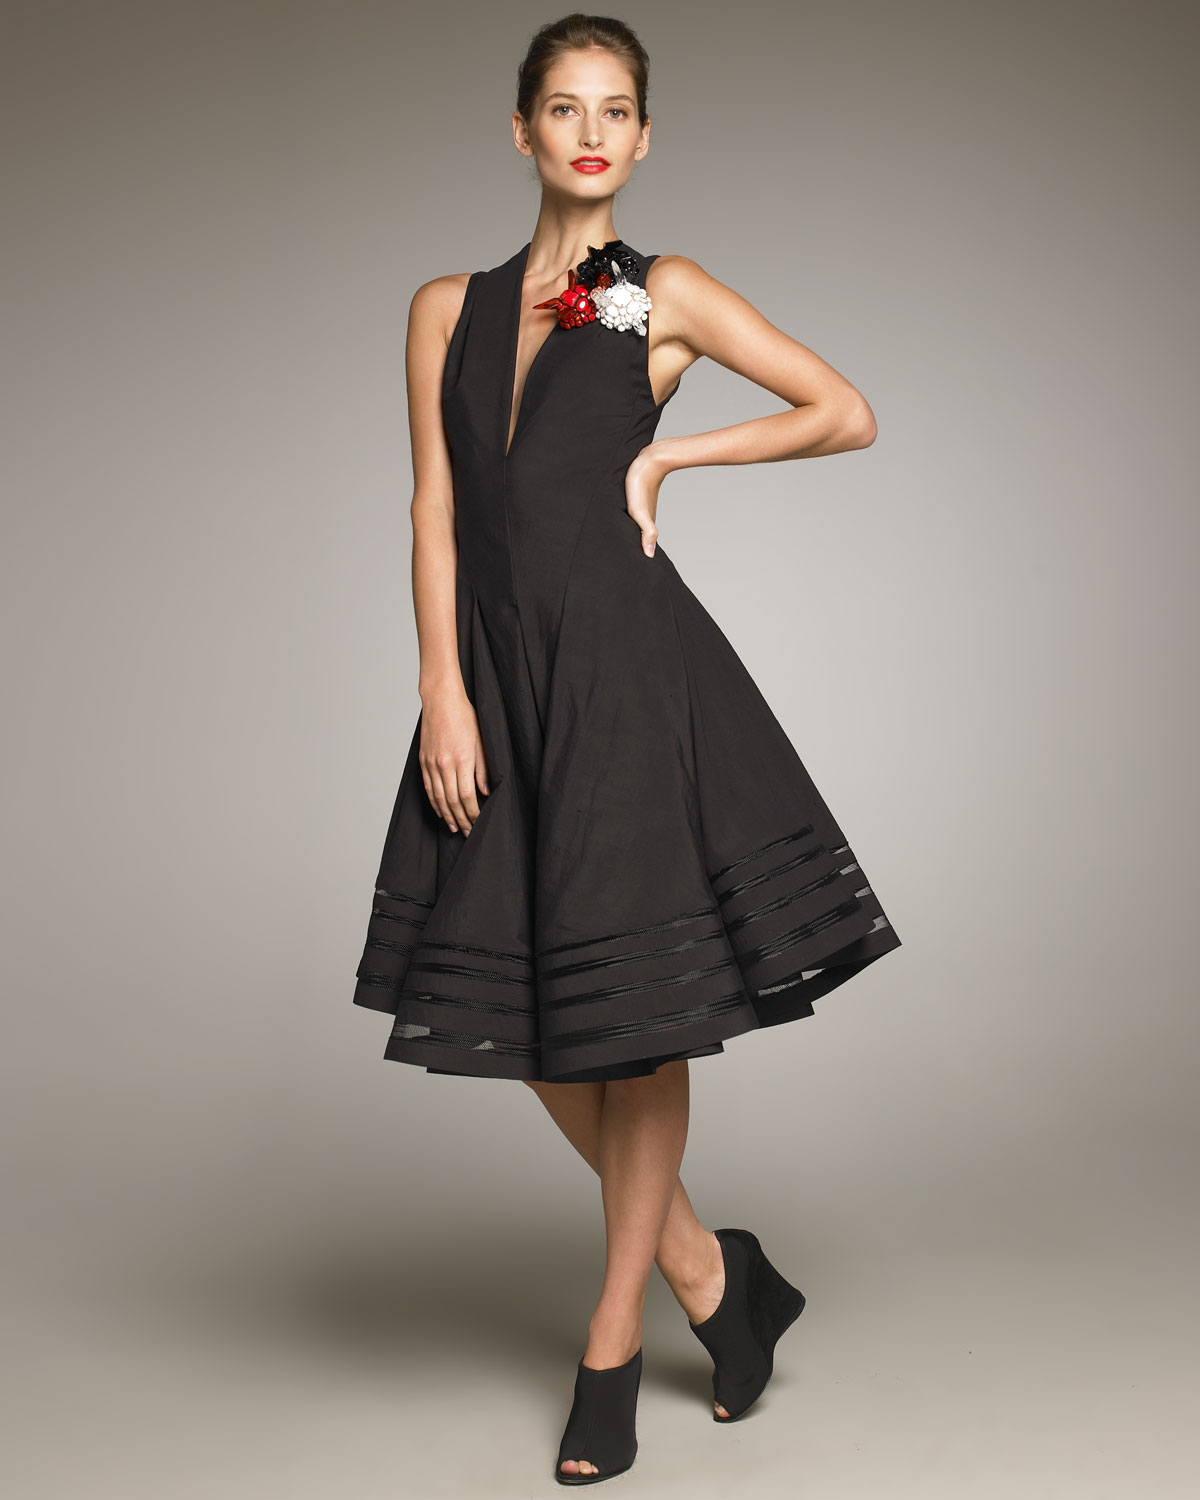 Donna karan new york swingy dress in black lyst for Donna karen new york